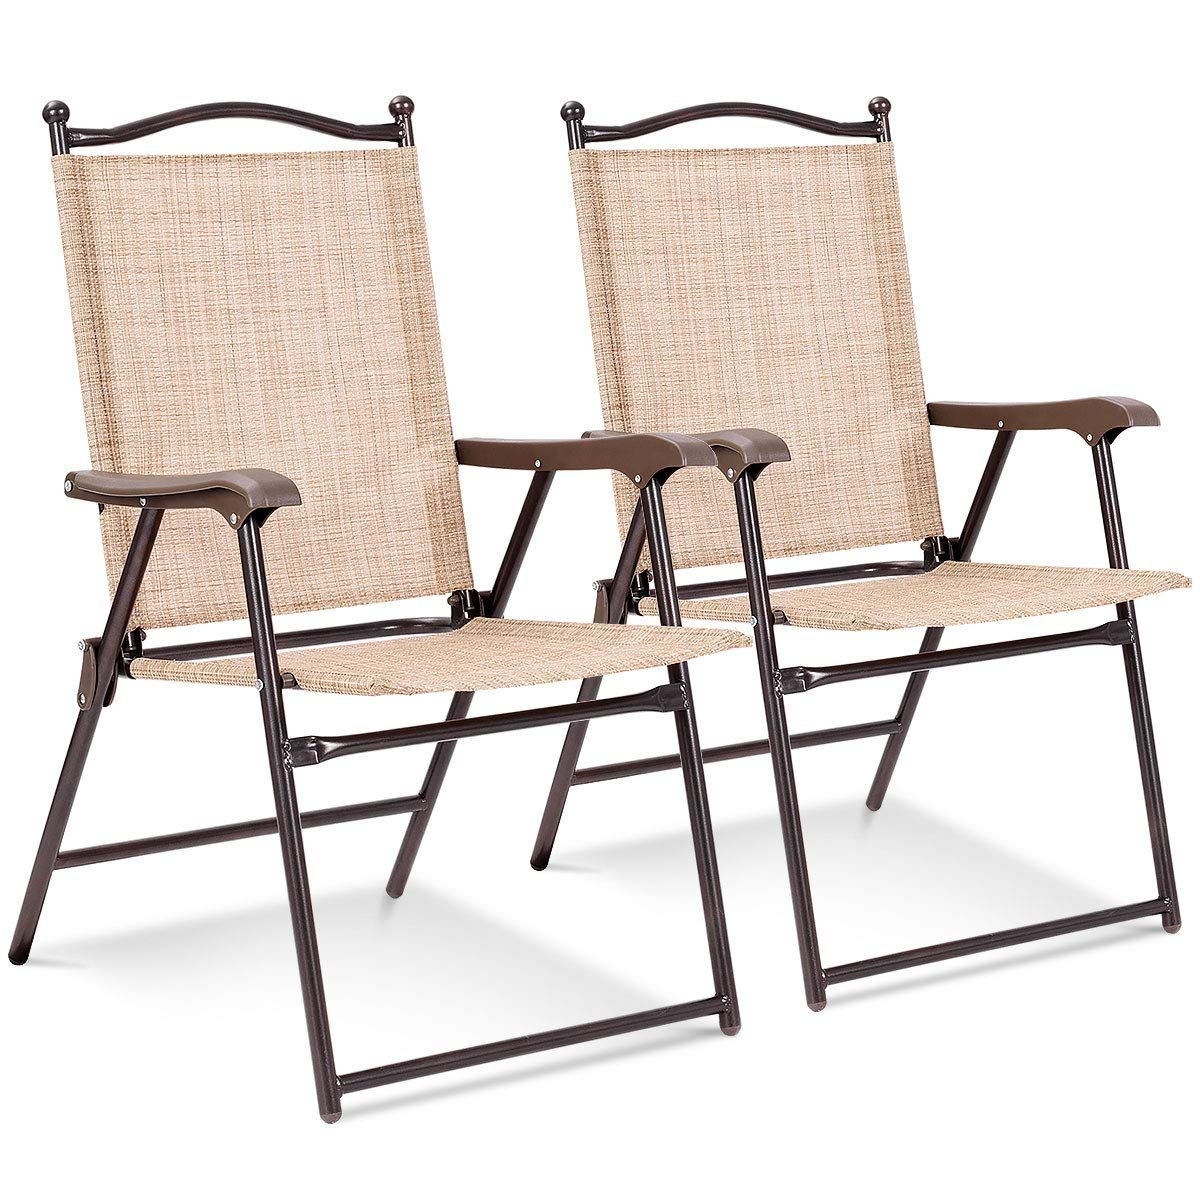 Giantex Patio Folding Chairs Sling Back Chairs Indoor